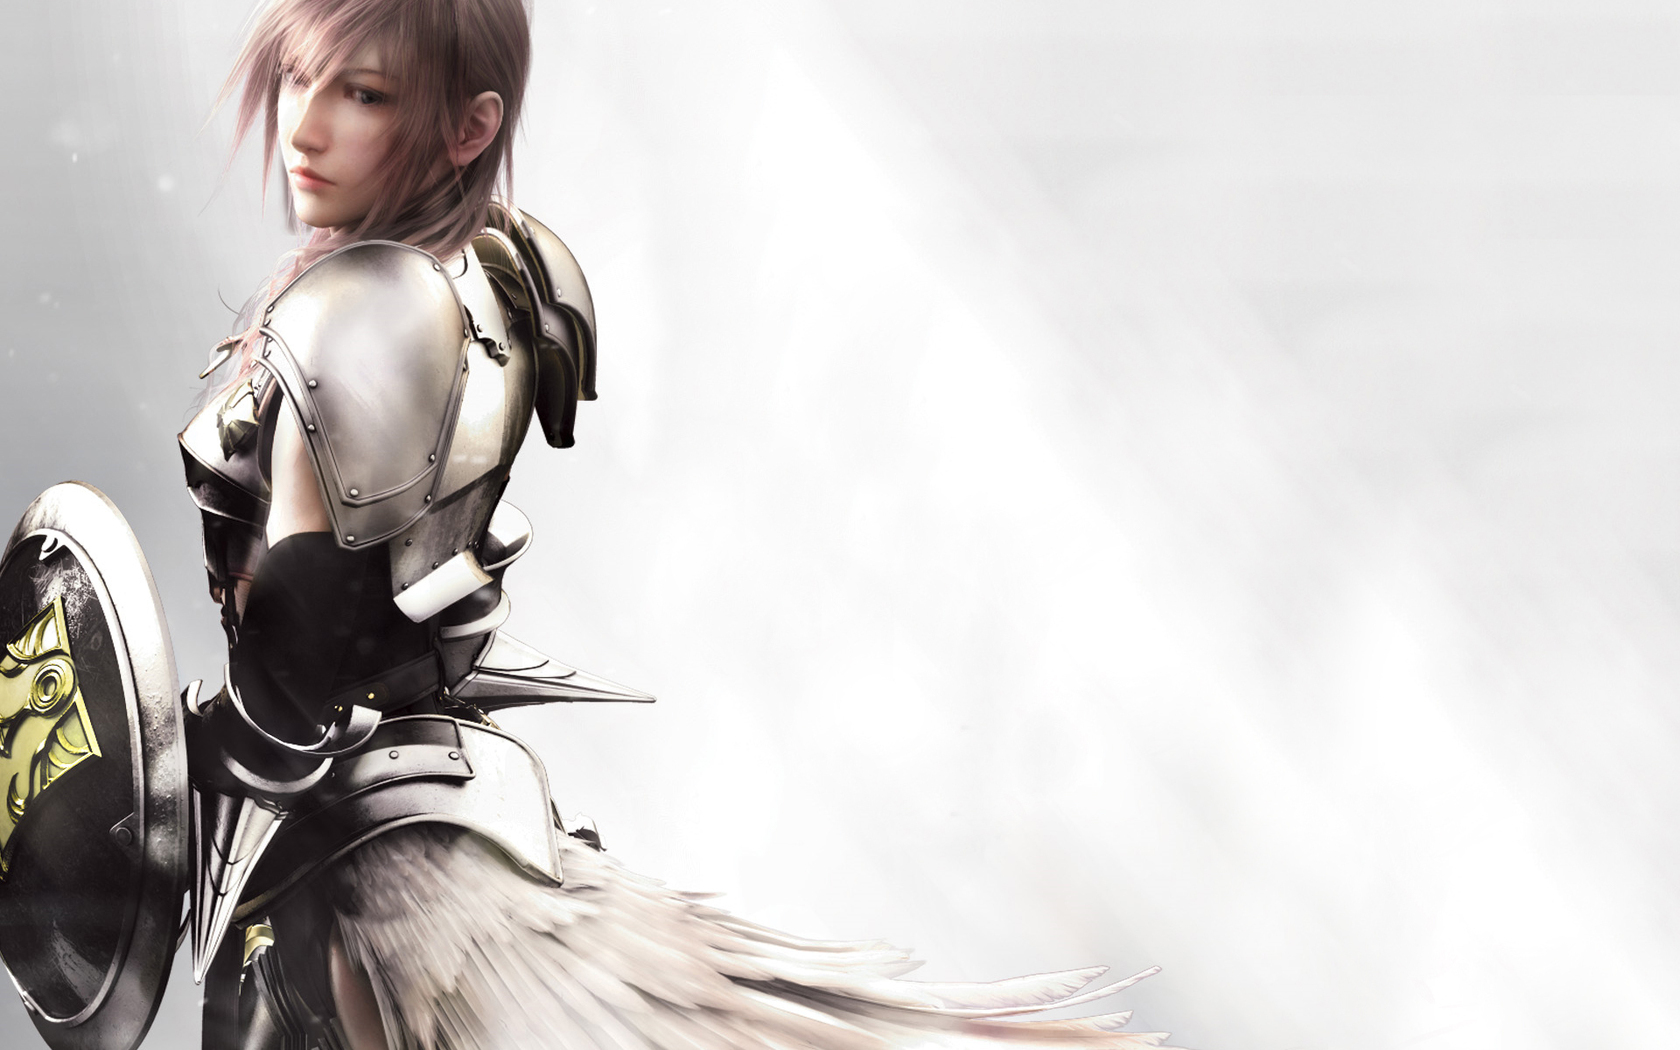 Free Download Final Fantasy Xiii 2 Wallpapers 5 Hd Wallpapers